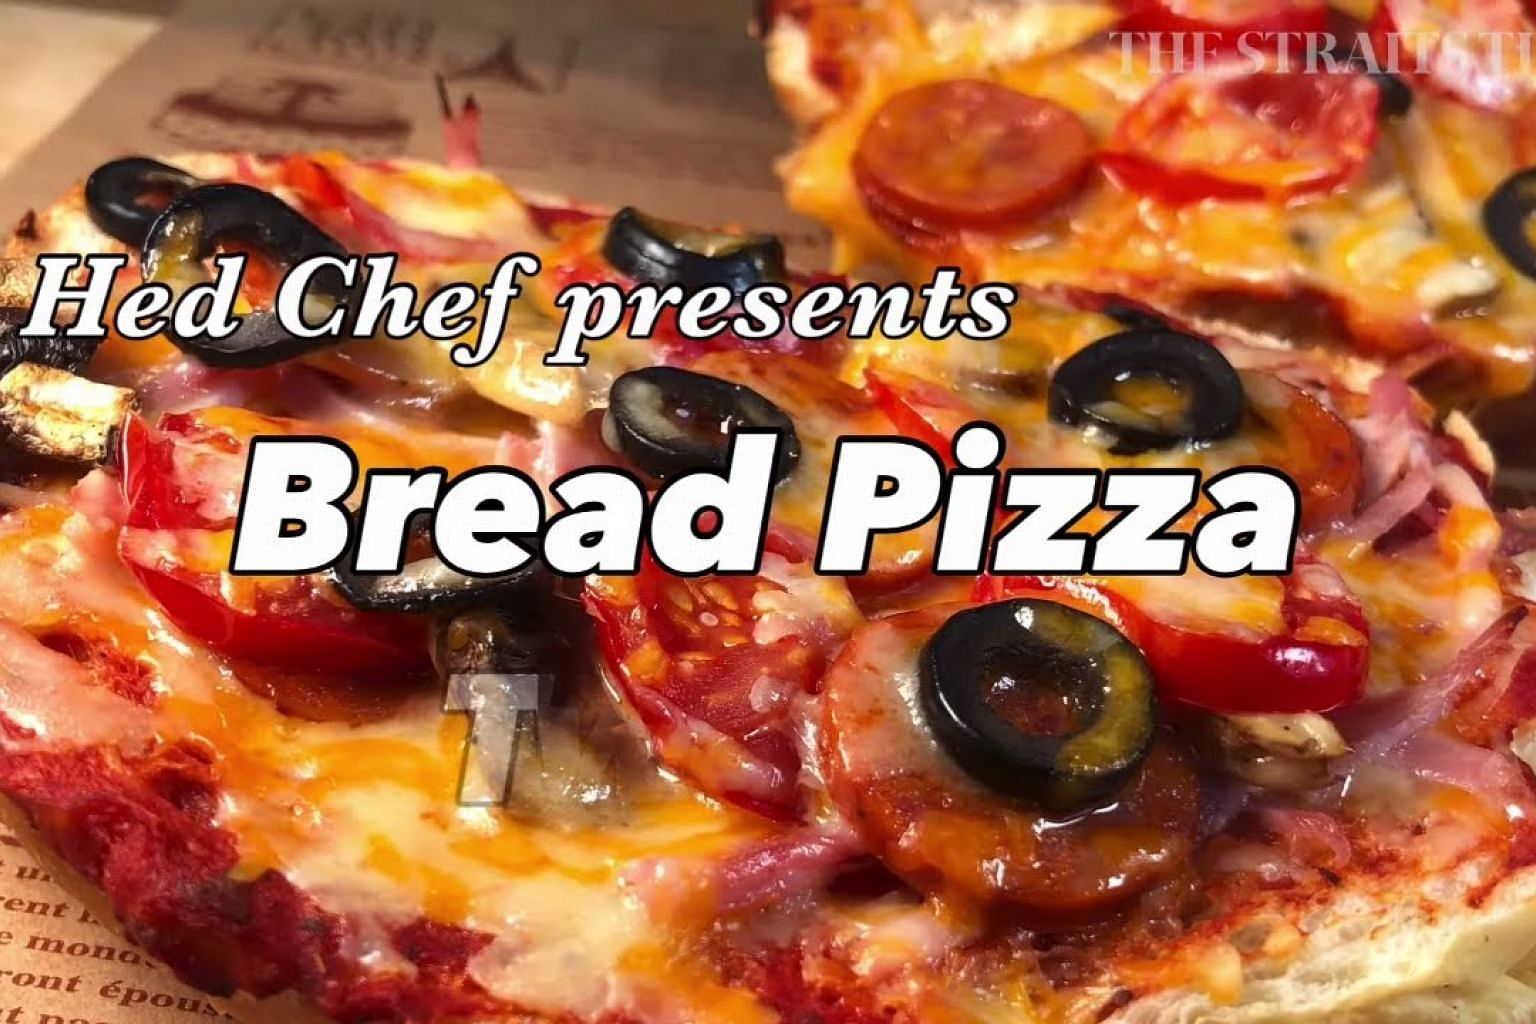 How to make bread pizza | Hed Chef | The Straits Times